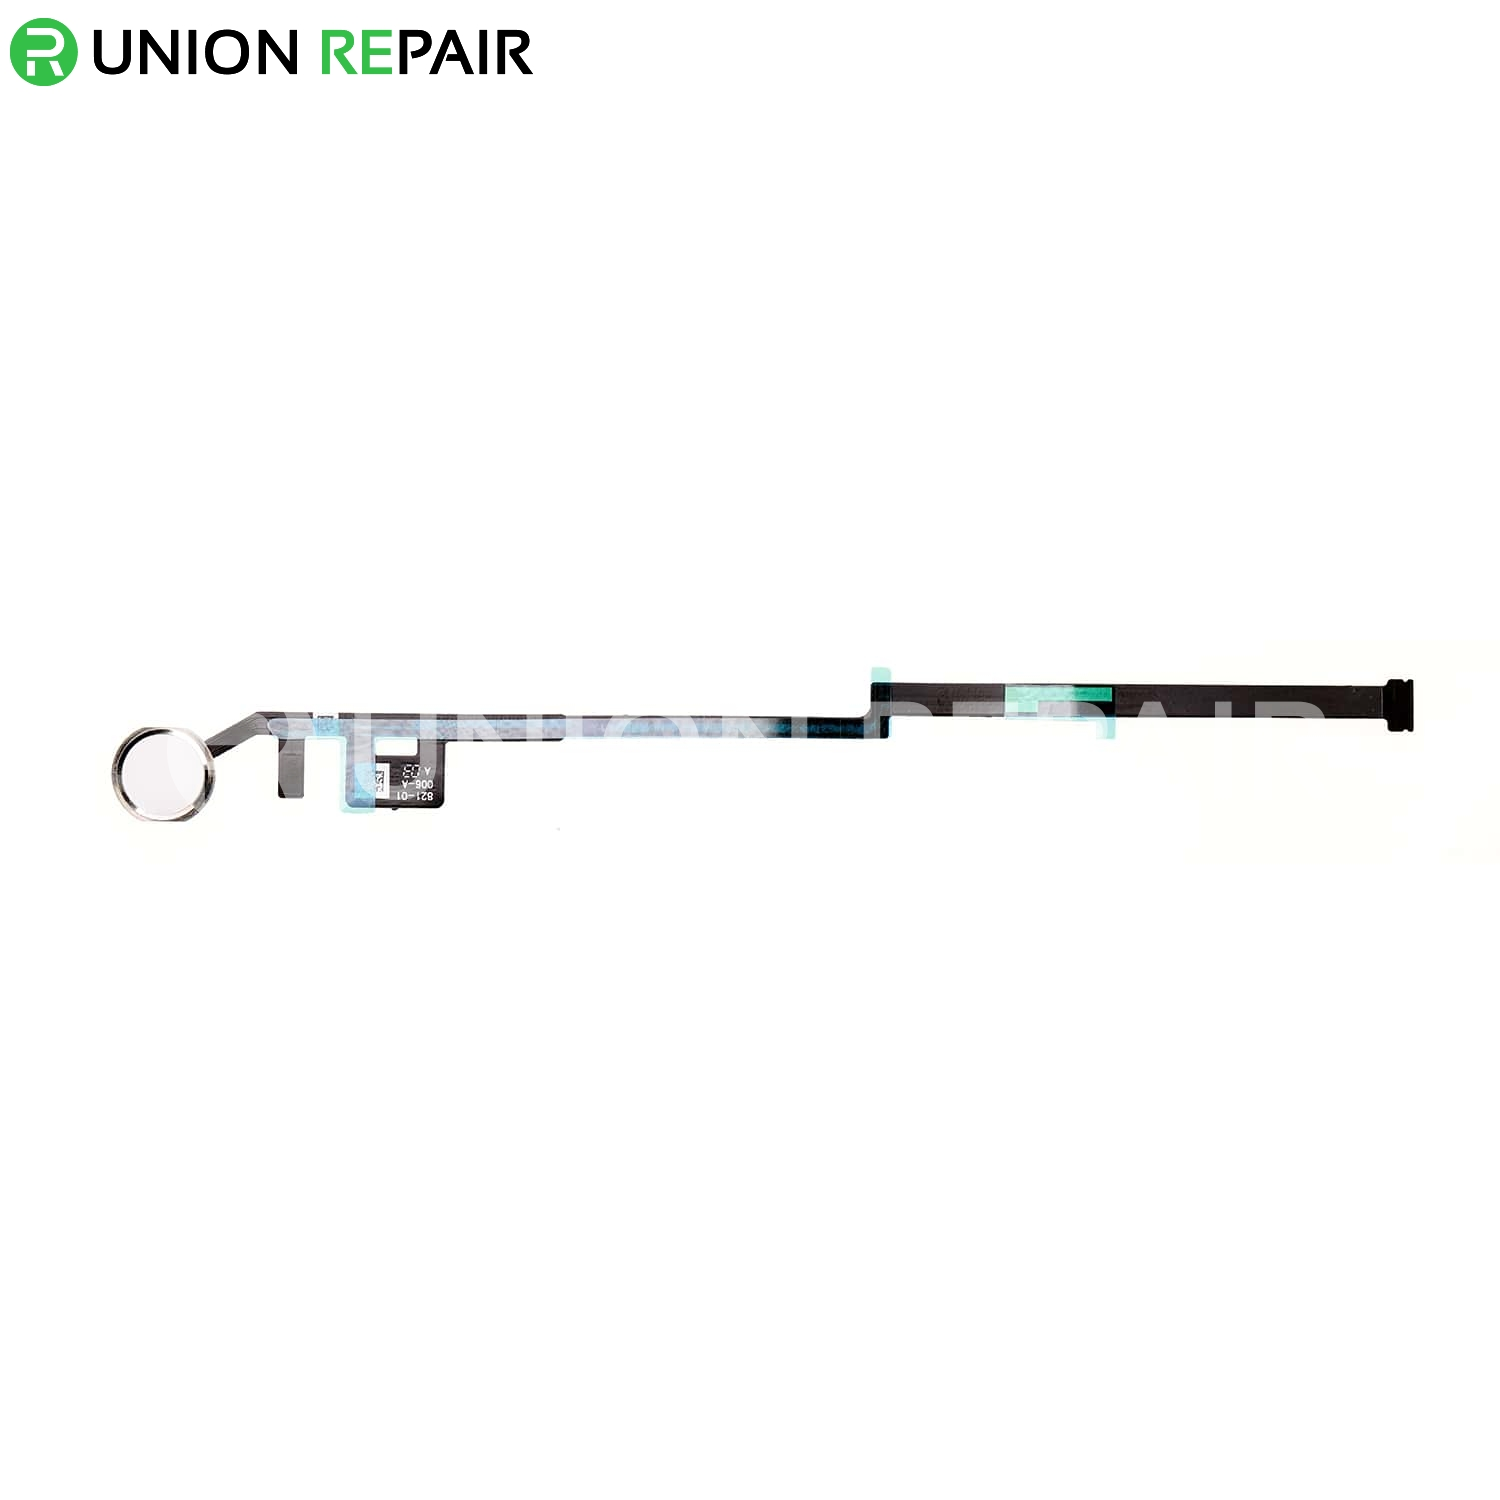 Replacement Fit iPad Mini 1 White Home button board flex connector cable 2